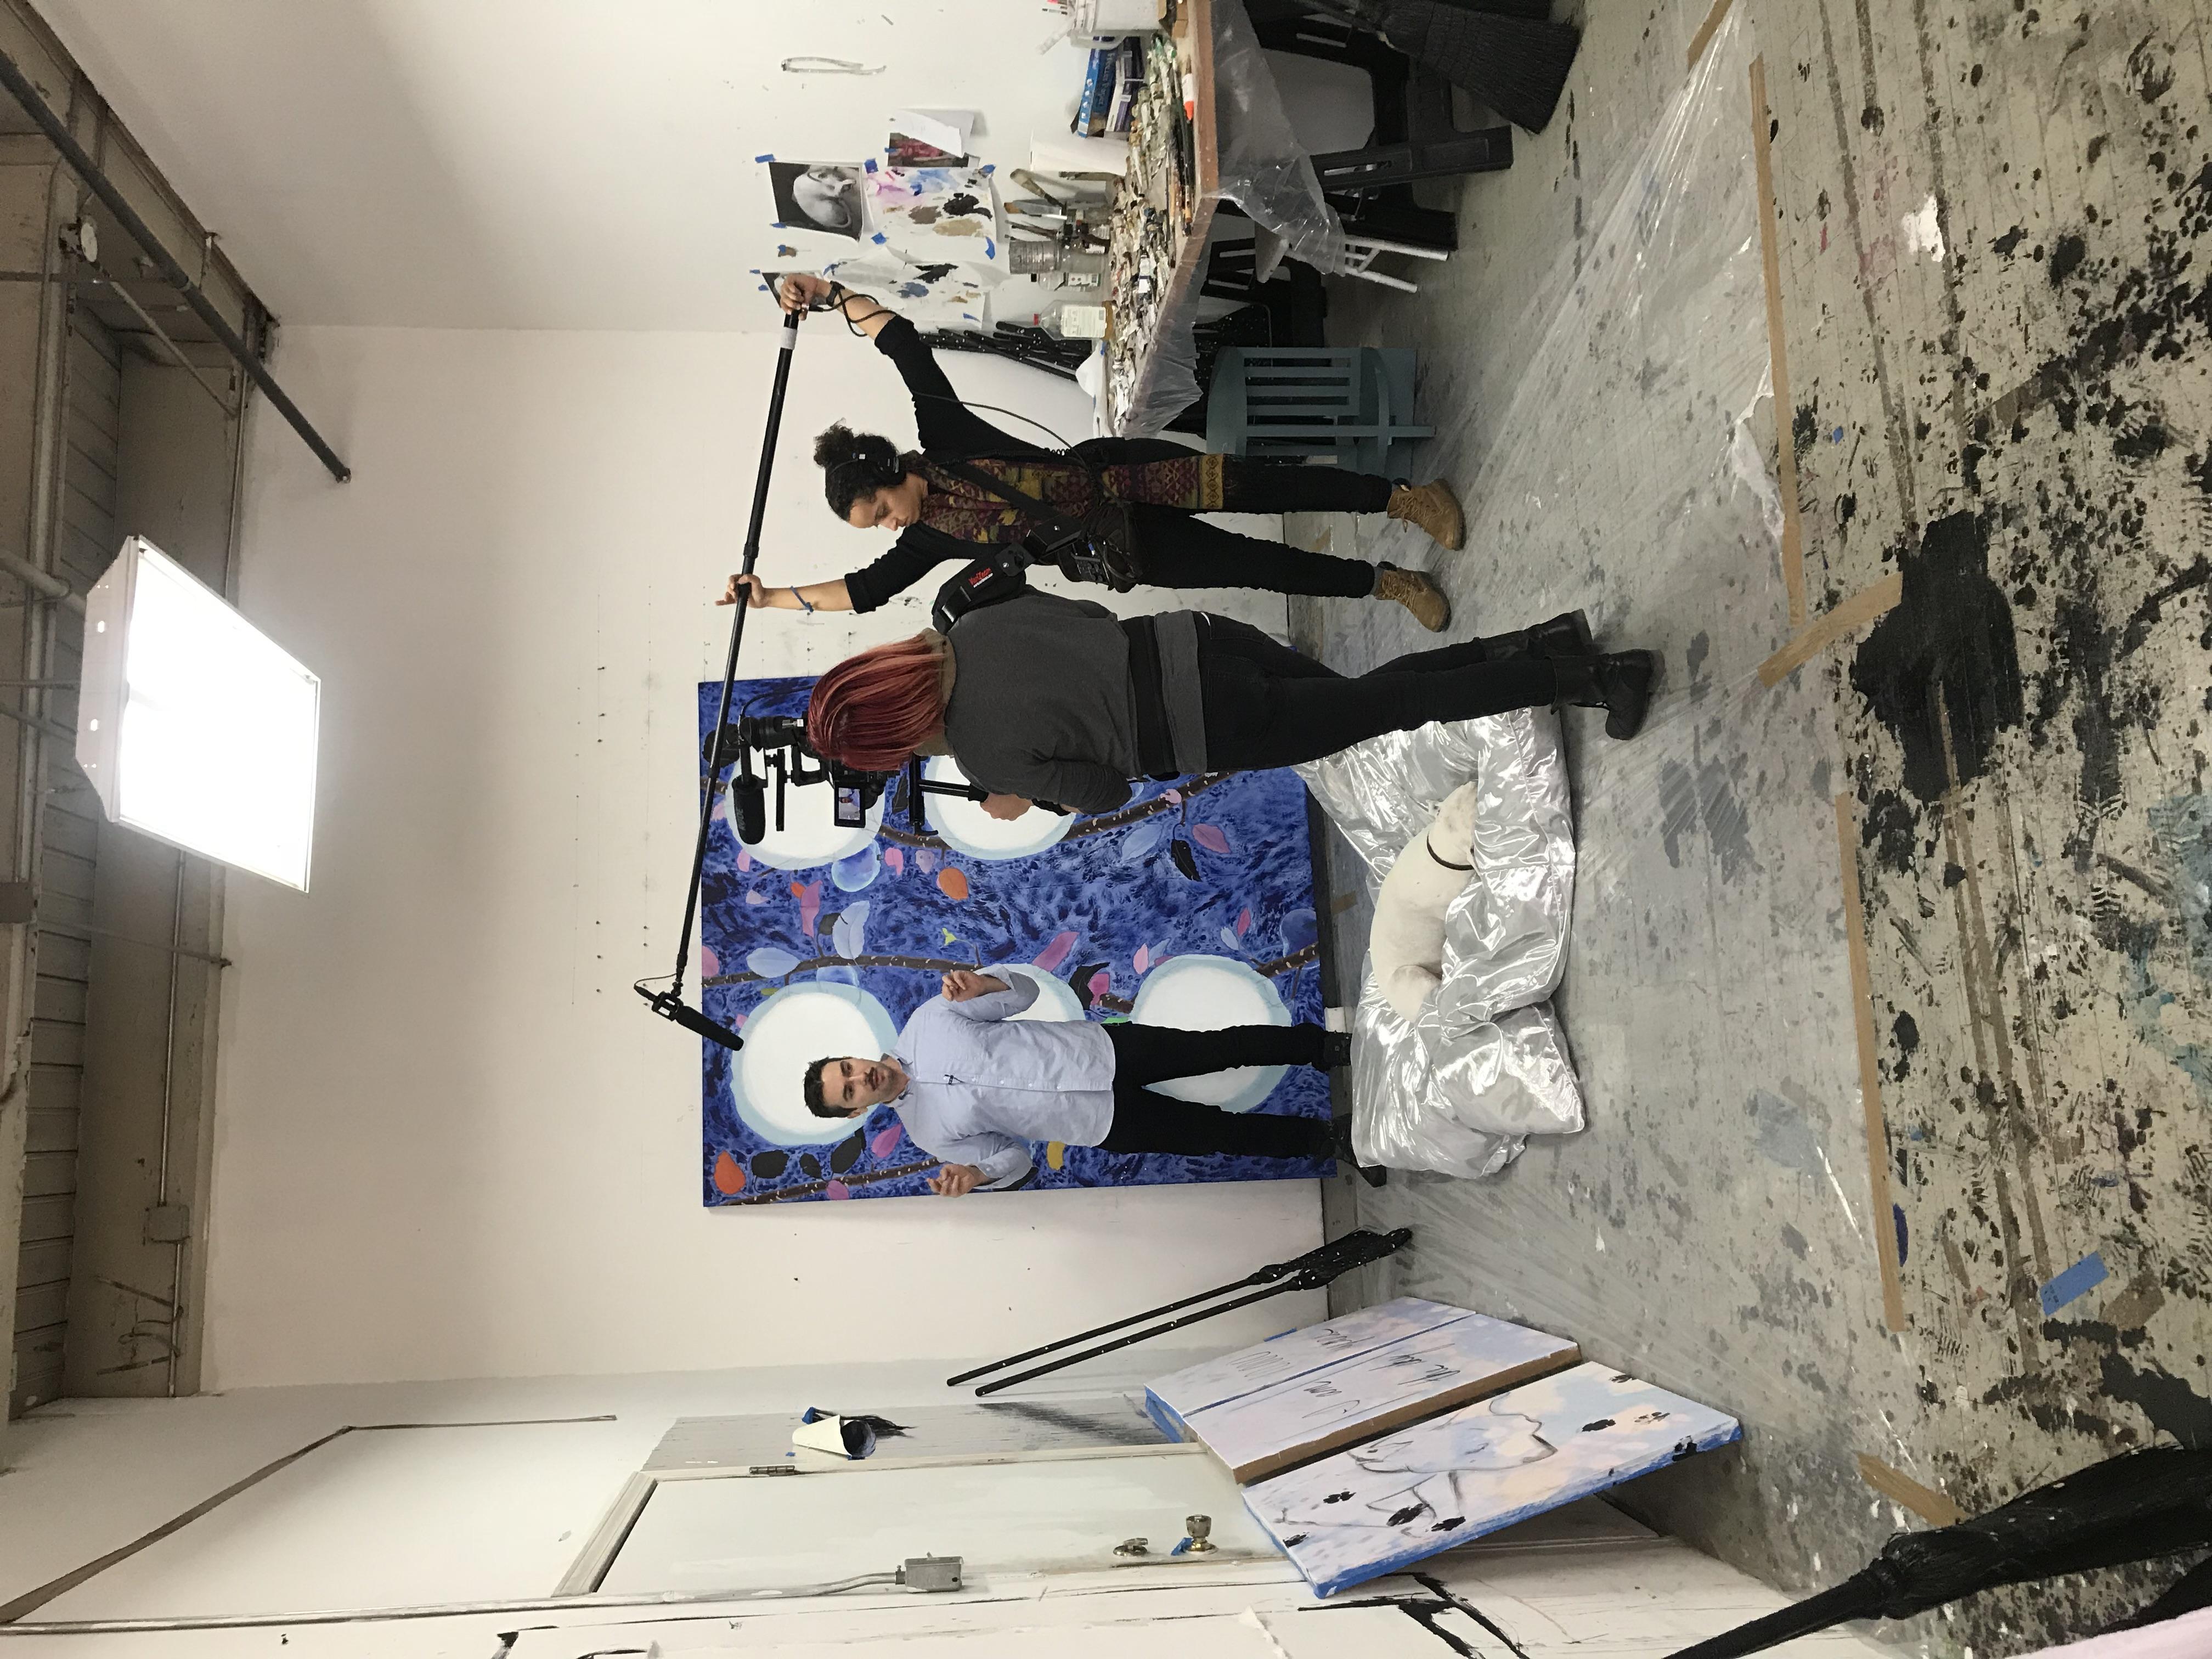 Two young feminine people hold recording equipment while a young dark-haired man speaks. They are in an artist's workspace with various artworks.